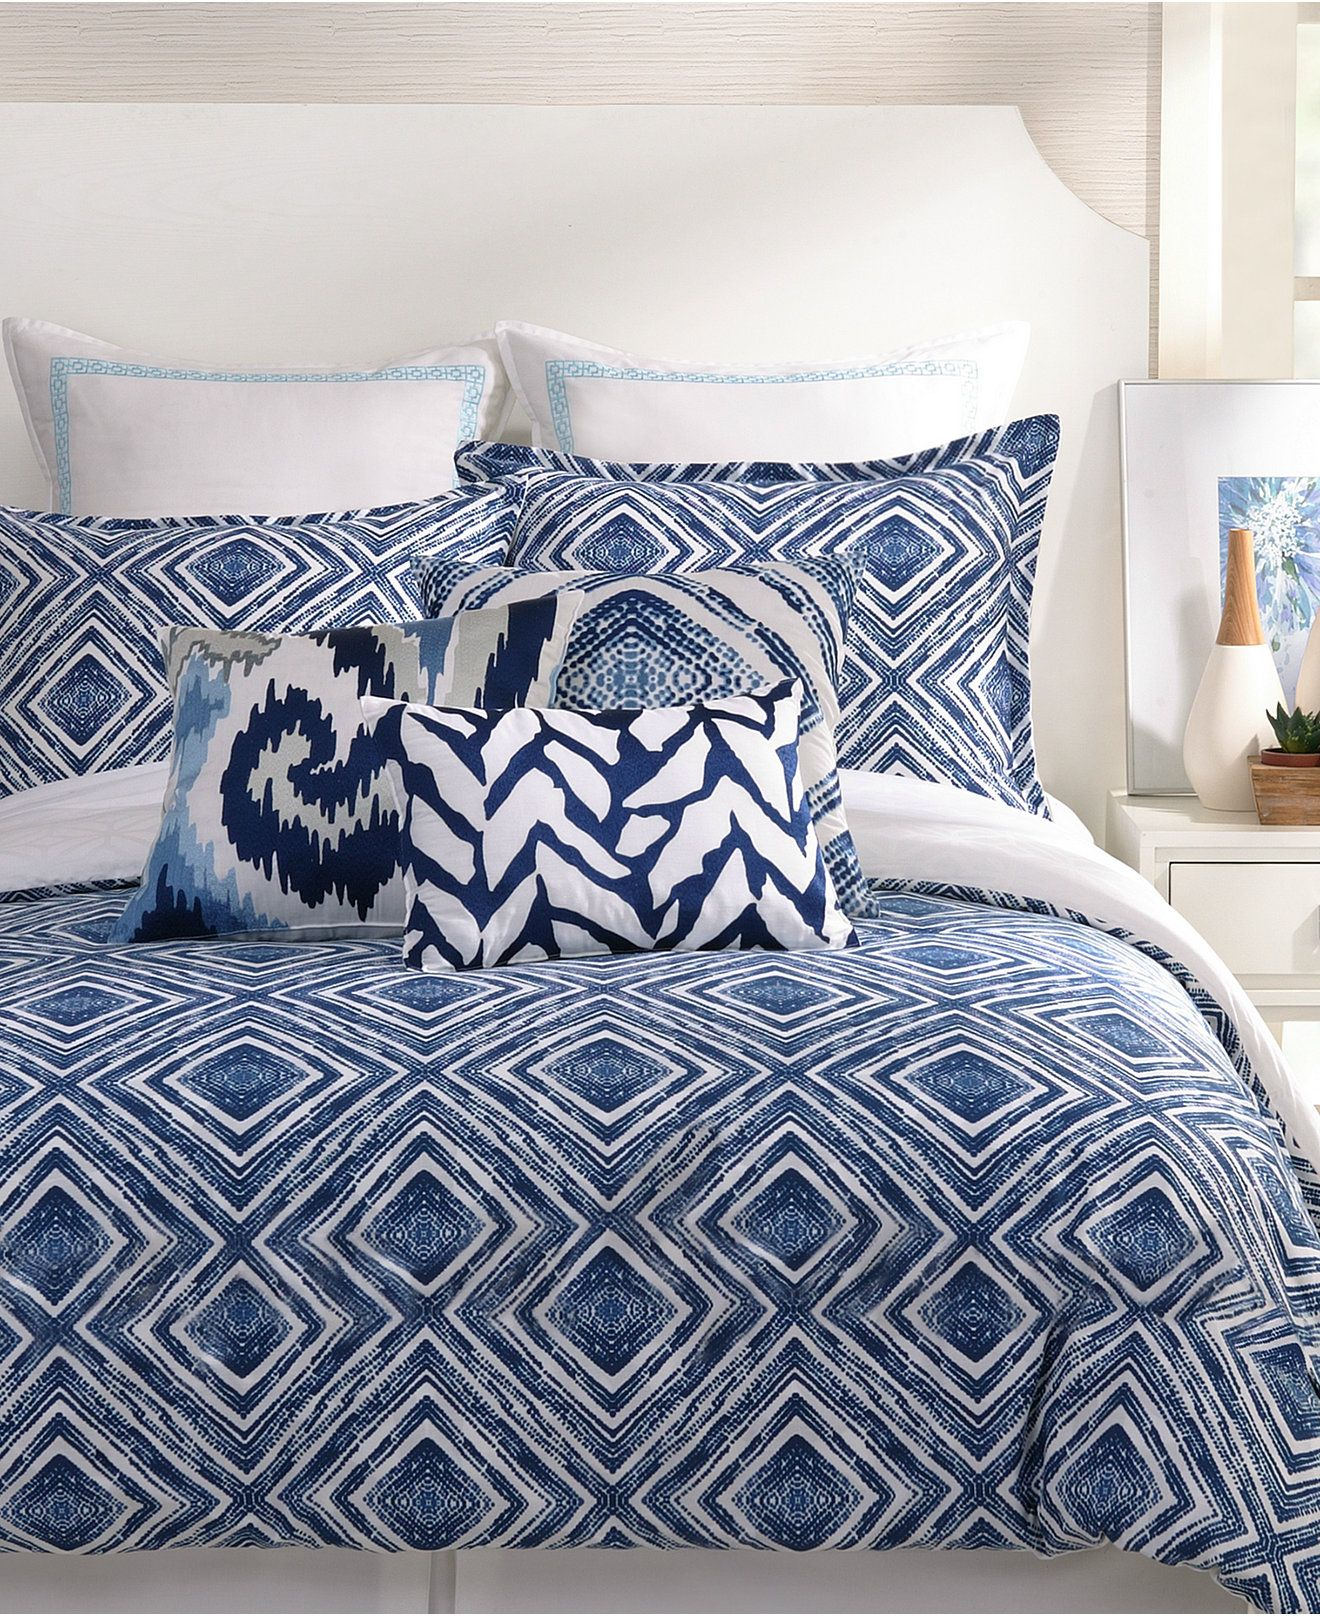 Trina turk bedding - Trina Turk Silver Lake Comforter And Duvet Cover Sets Bedding Collections Bed Bath